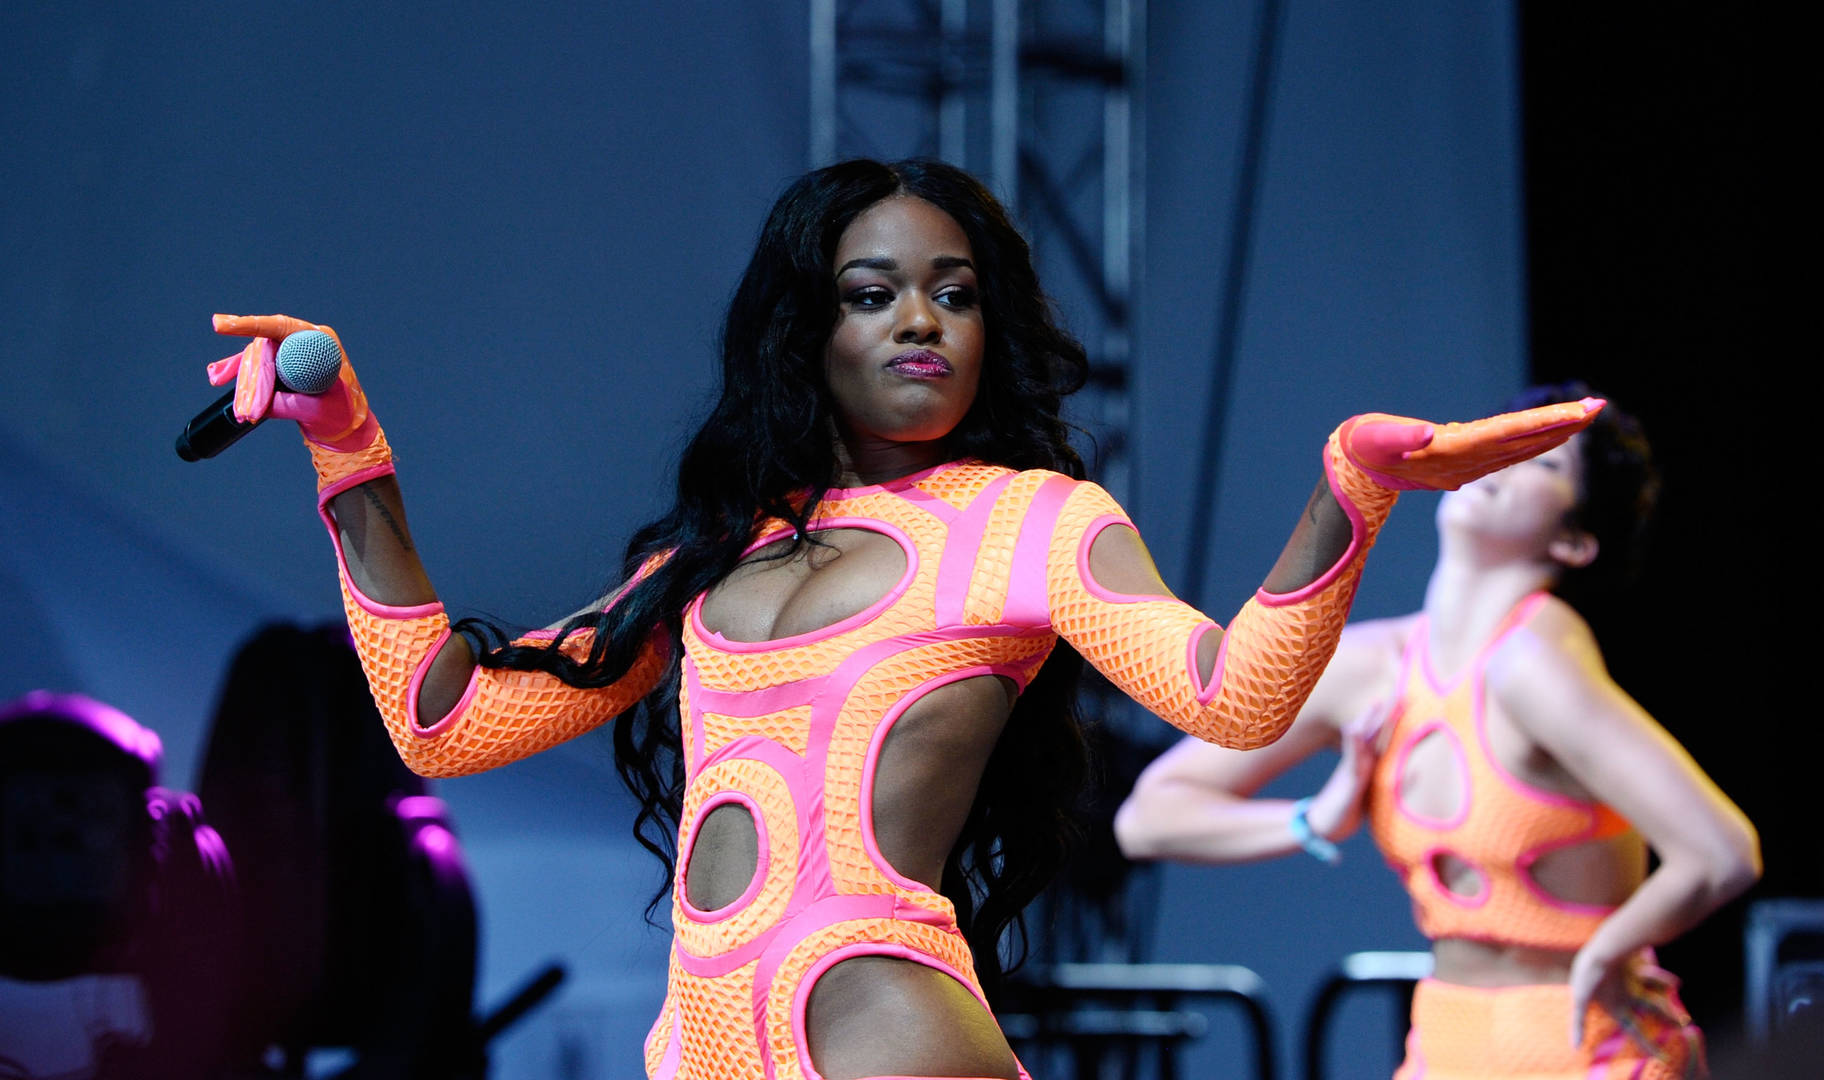 Azealia Banks Announces Retirement Like Only She Can